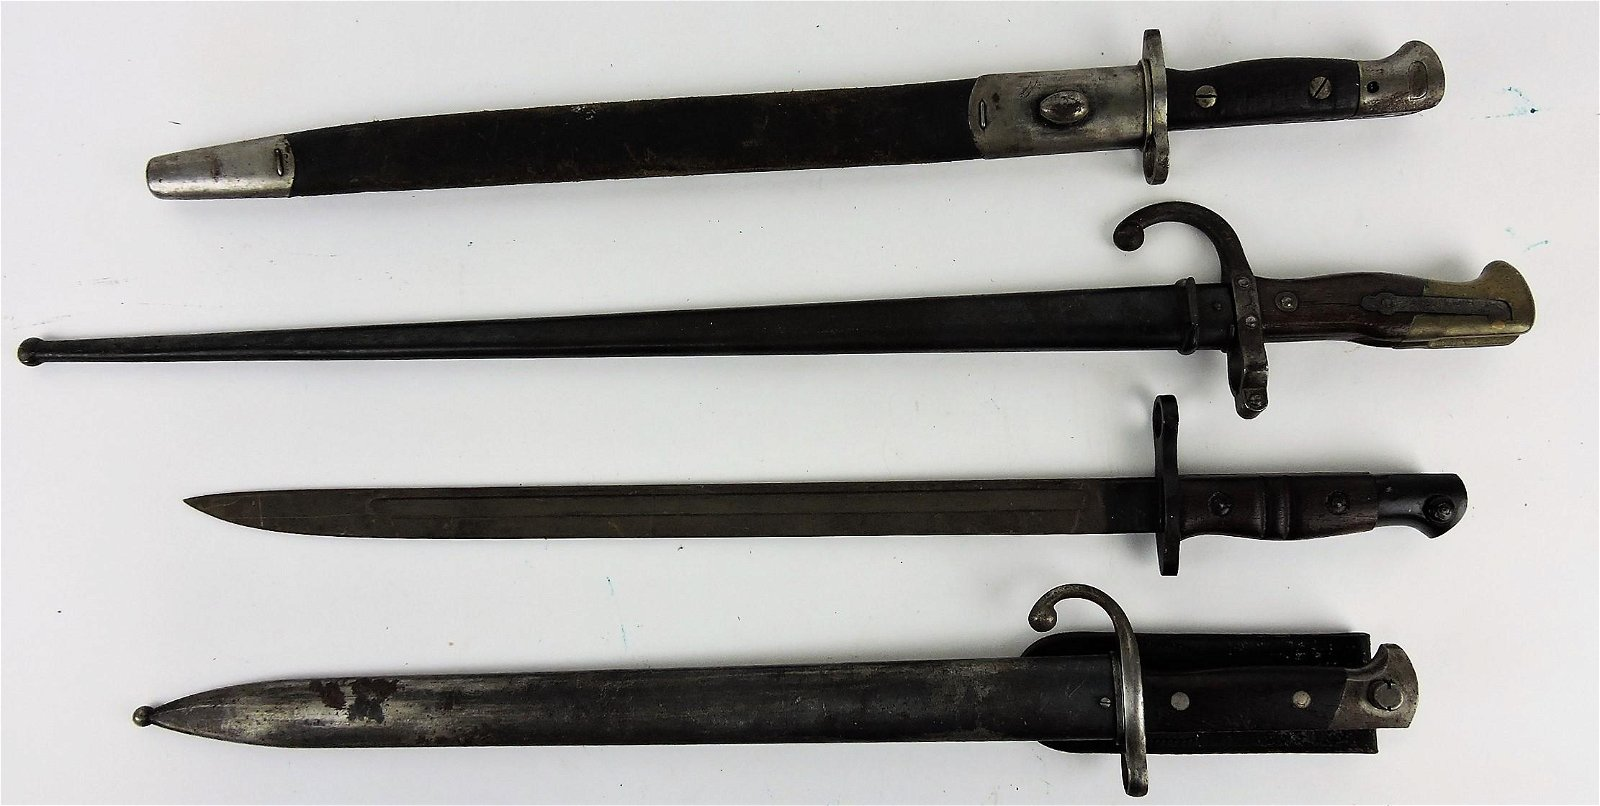 Bayonet lot of 4, three with scabbards,